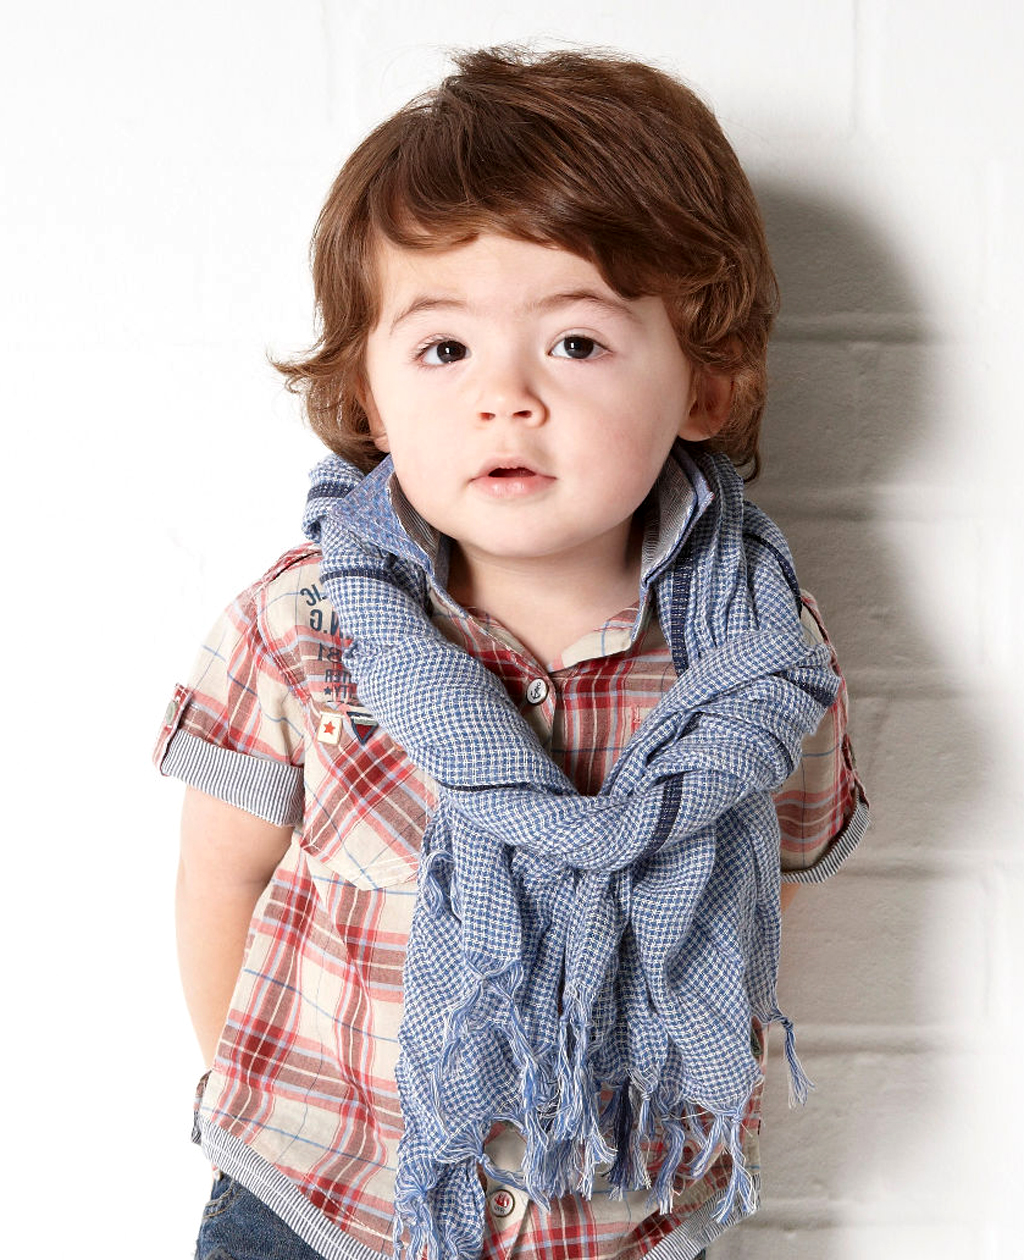 Cute Baby Boy With Mobile Wallpapers Hd | High Definitions ...